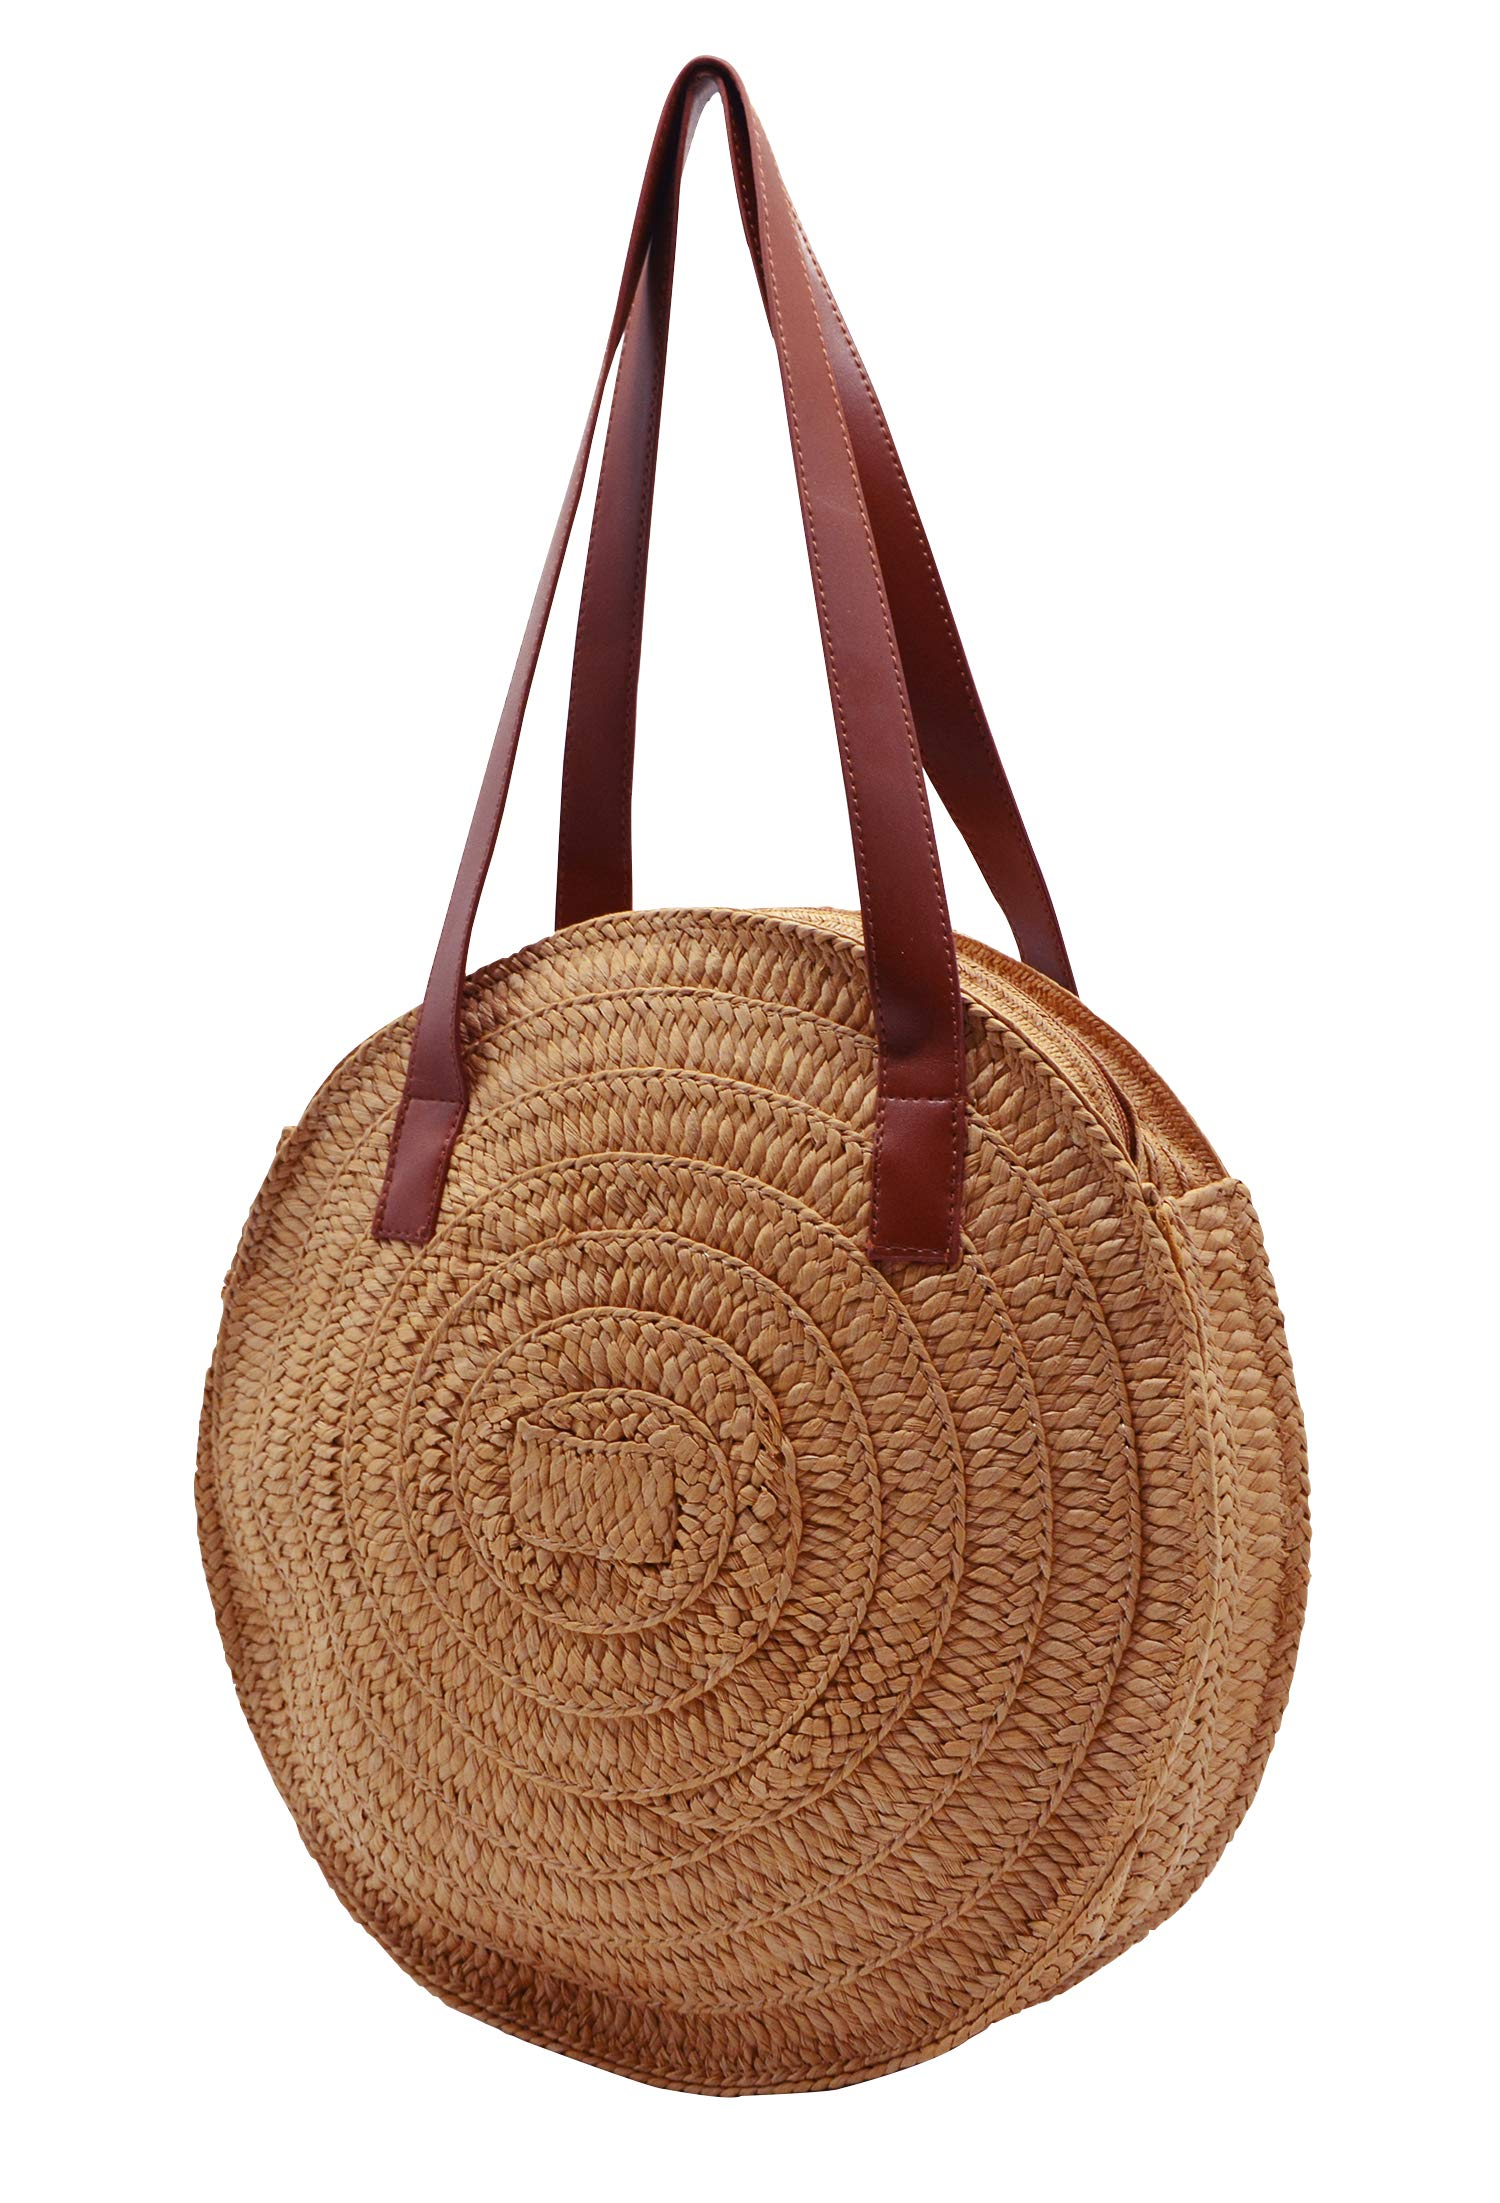 Women Straw Handbag, Summer Beach Tote Bag Handwoven Round Paper String Bag Shoulder Bag with Leather Straps